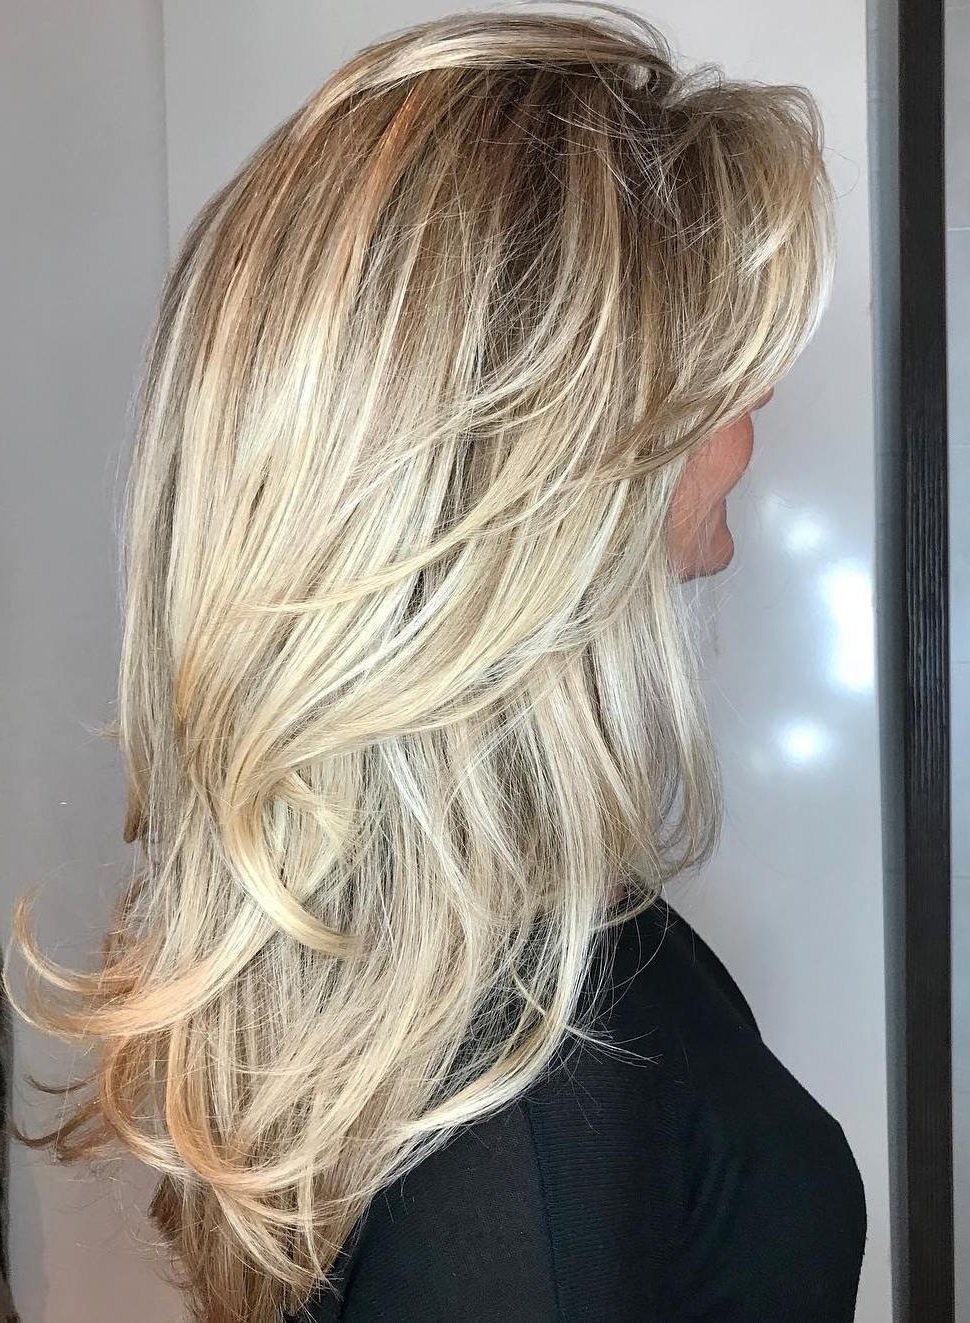 50 Cute Long Layered Haircuts With Bangs 2018 In Most Current Feathered Cut Blonde Hairstyles With Middle Part (View 4 of 20)